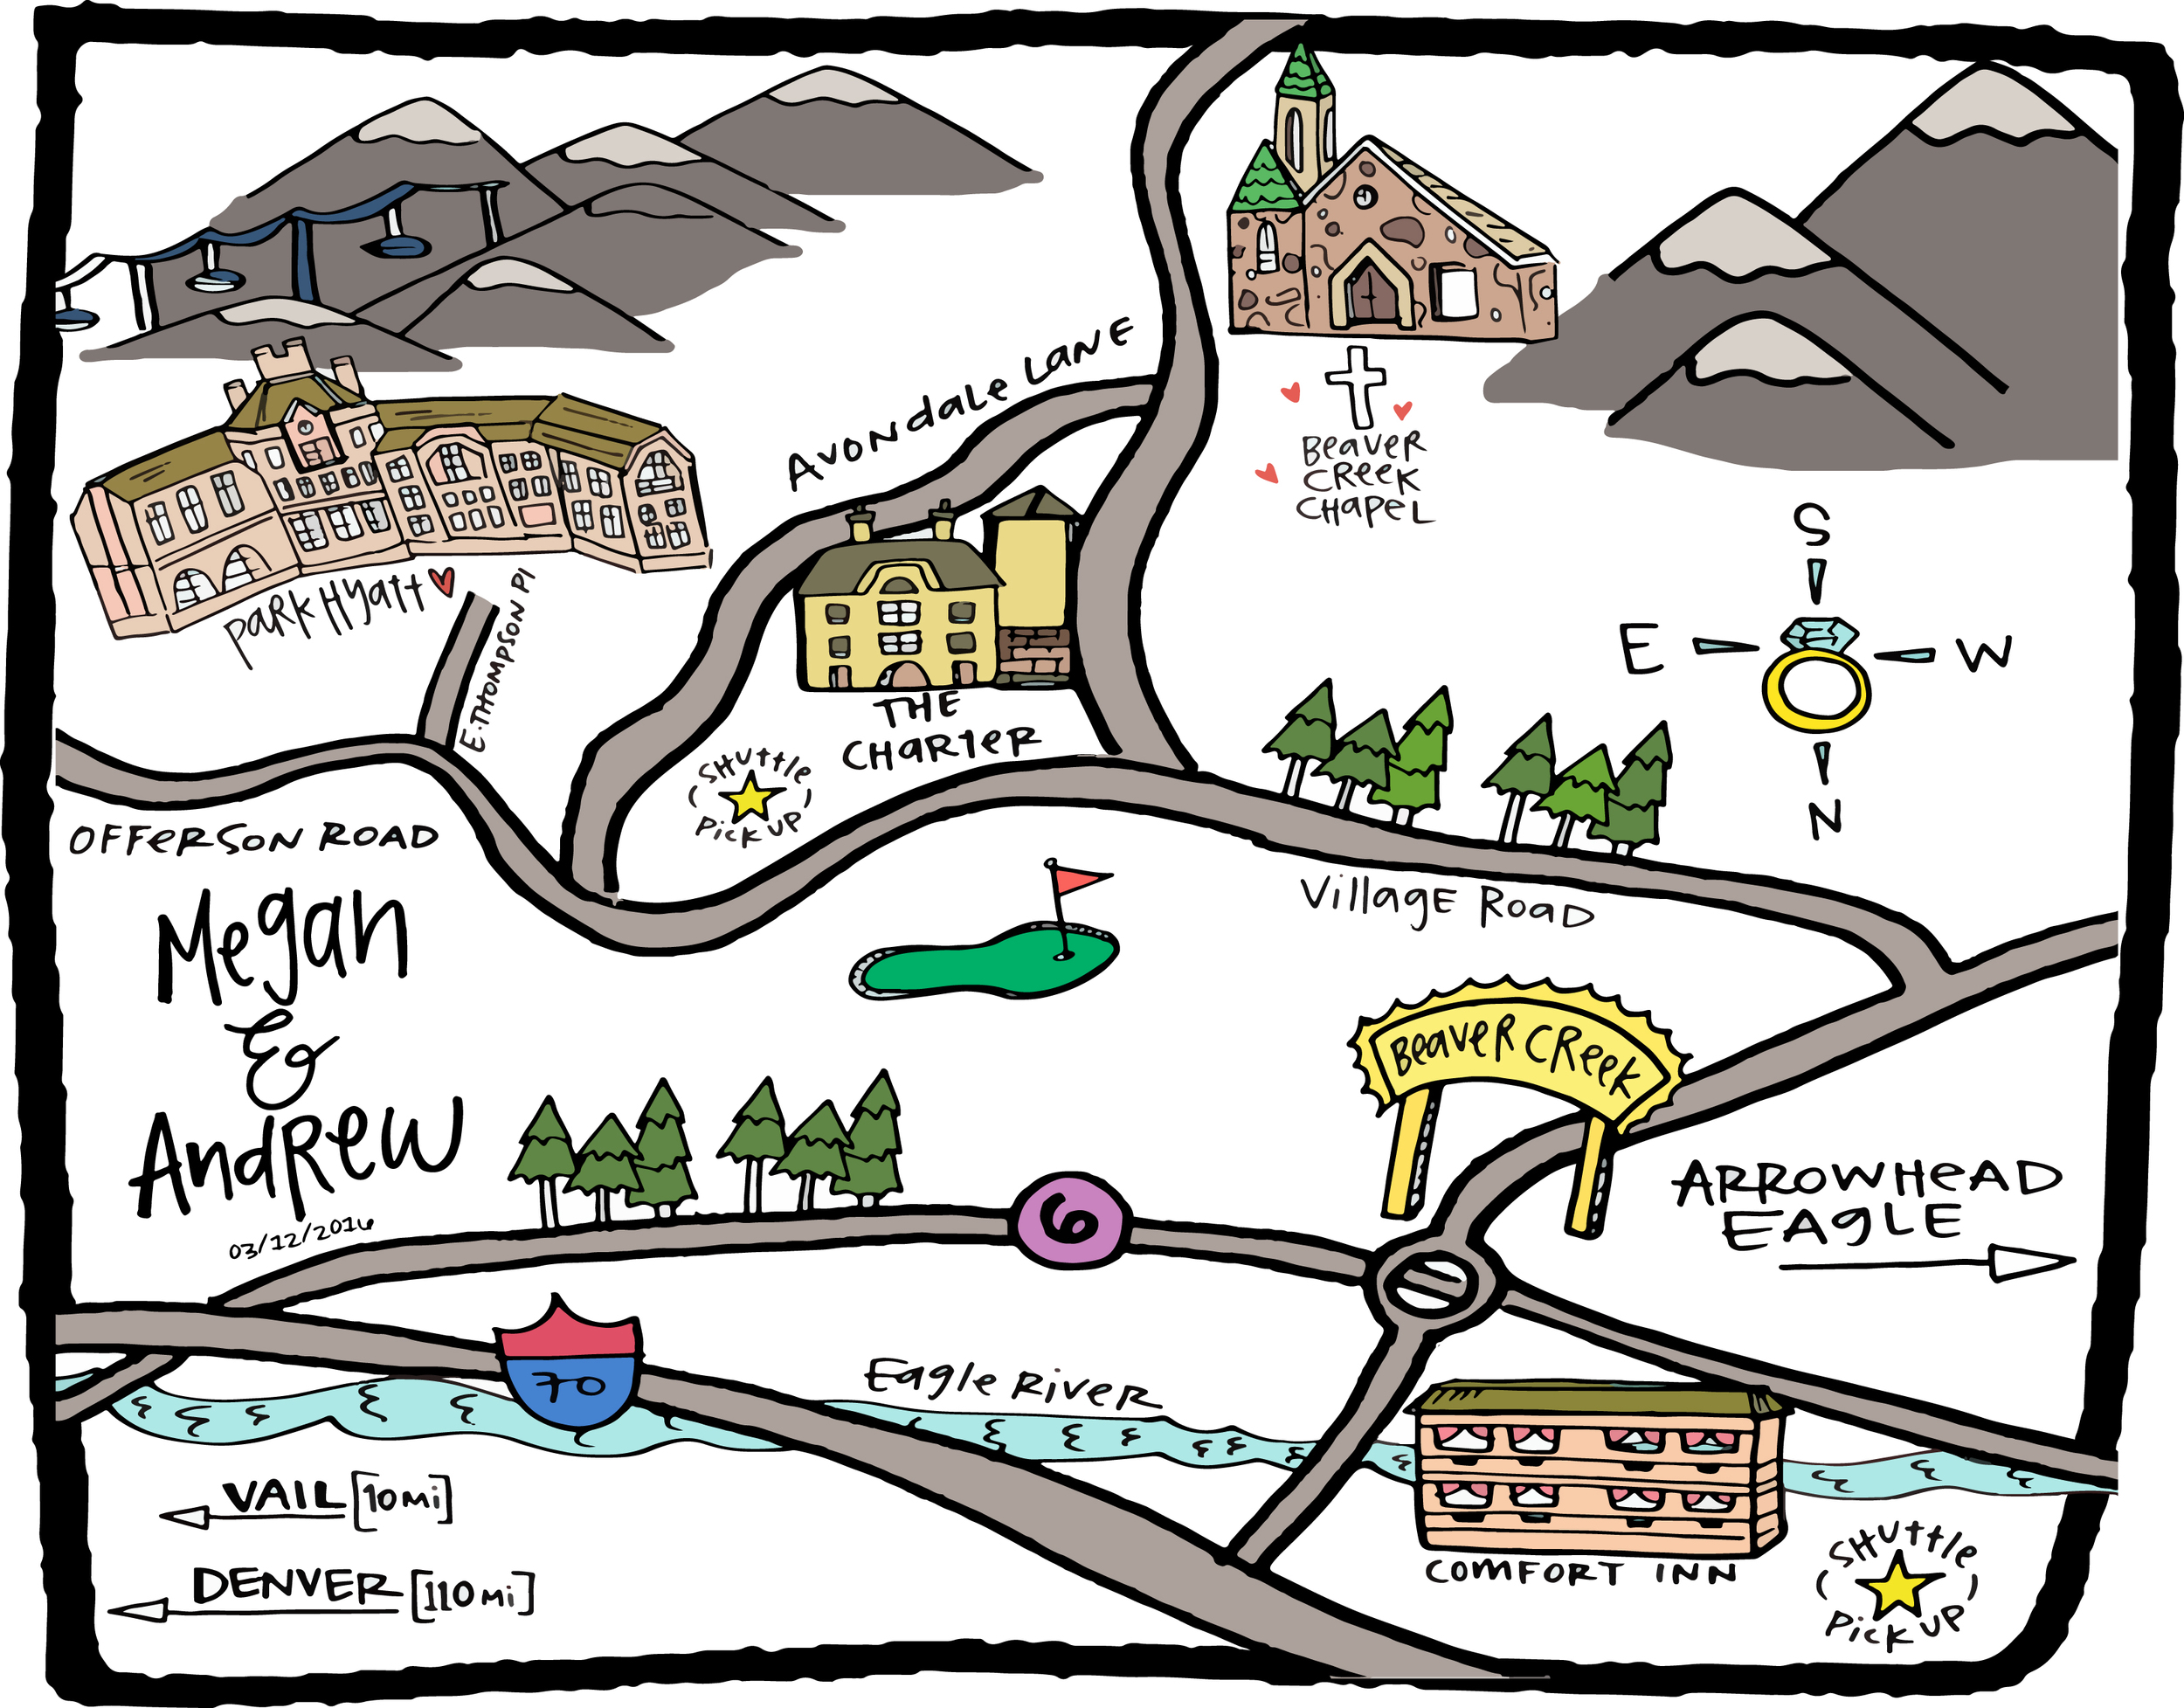 A map for Megan & Andrew's wedding guests.